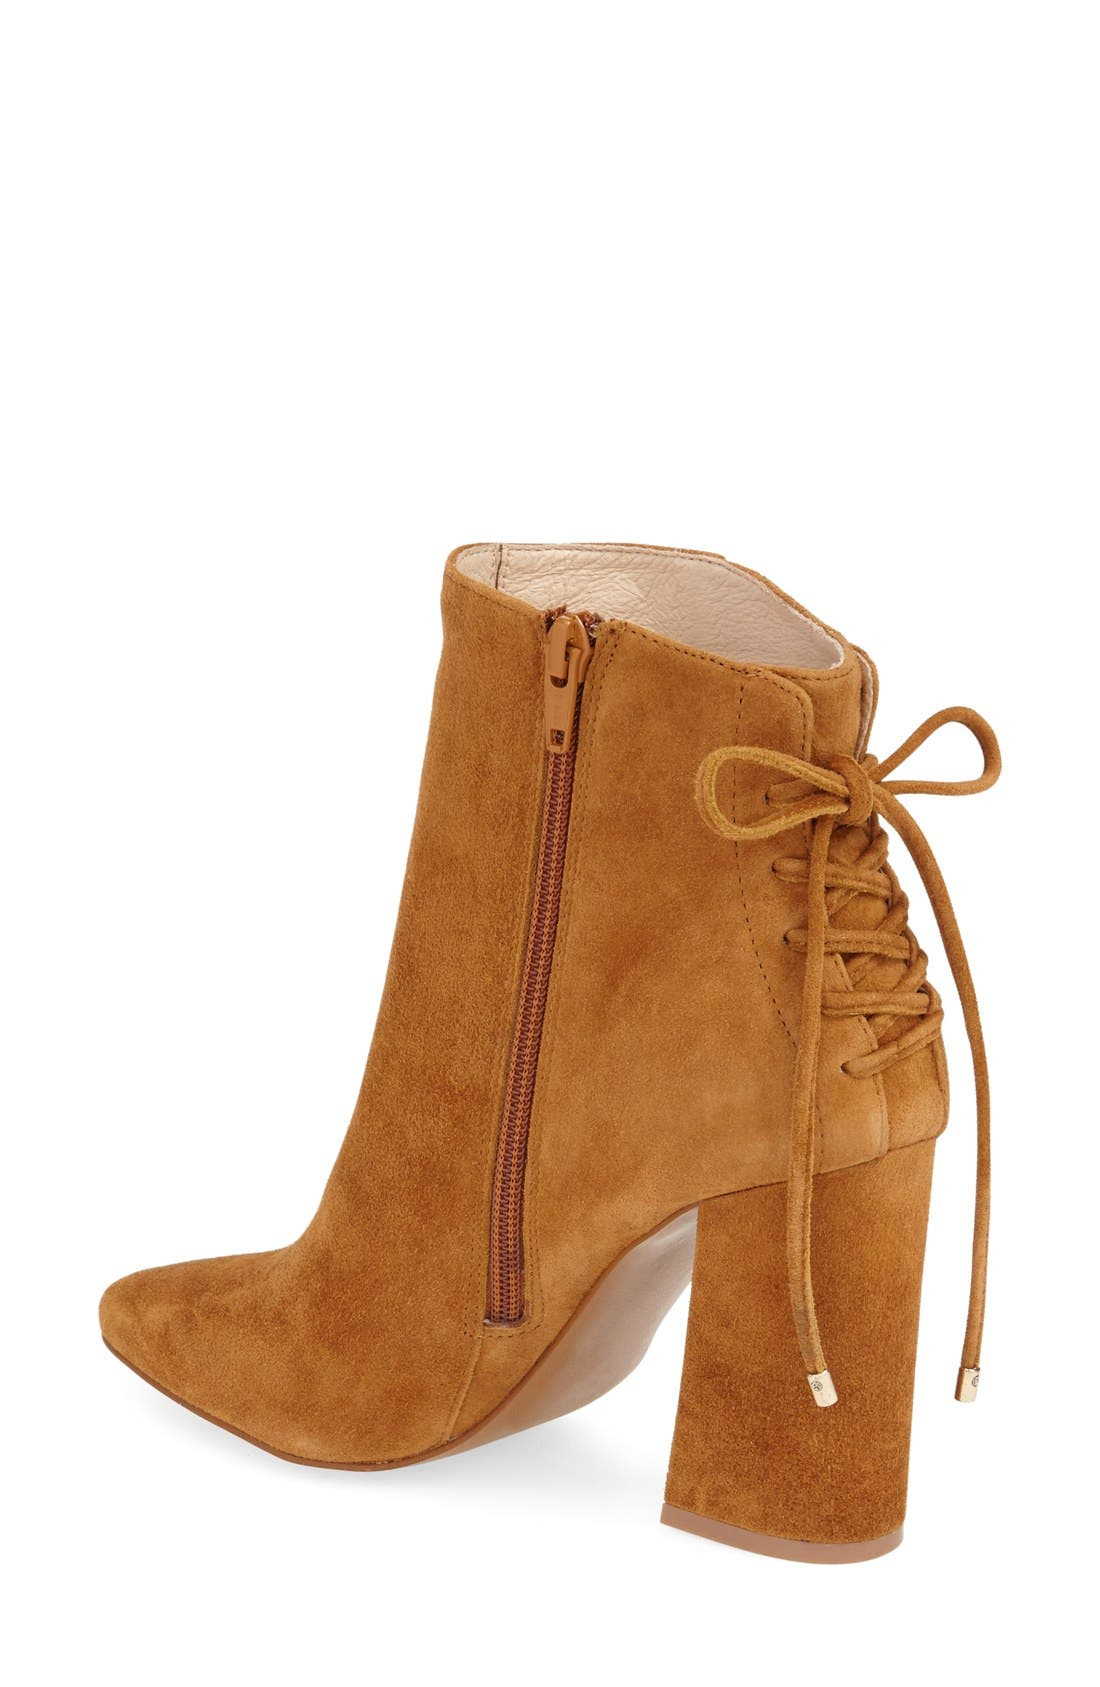 'Siren' Pointy Toe Bootie,                             Alternate thumbnail 6, color,